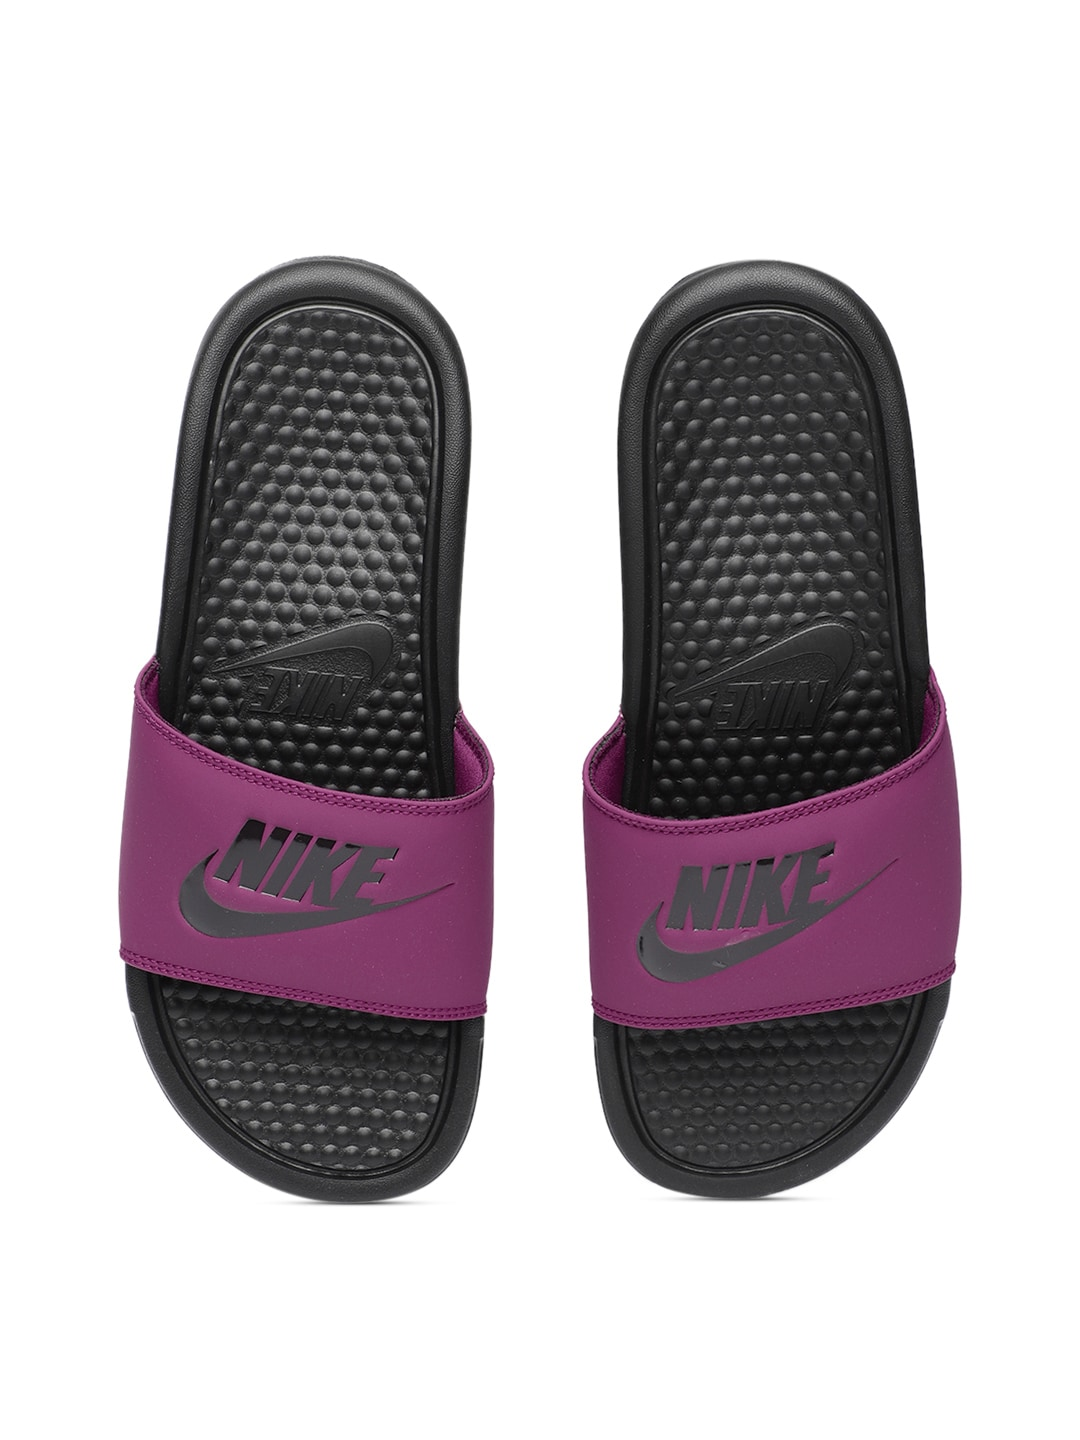 9cb124c37 Nike Flip-Flops - Buy Nike Flip-Flops for Men Women Online